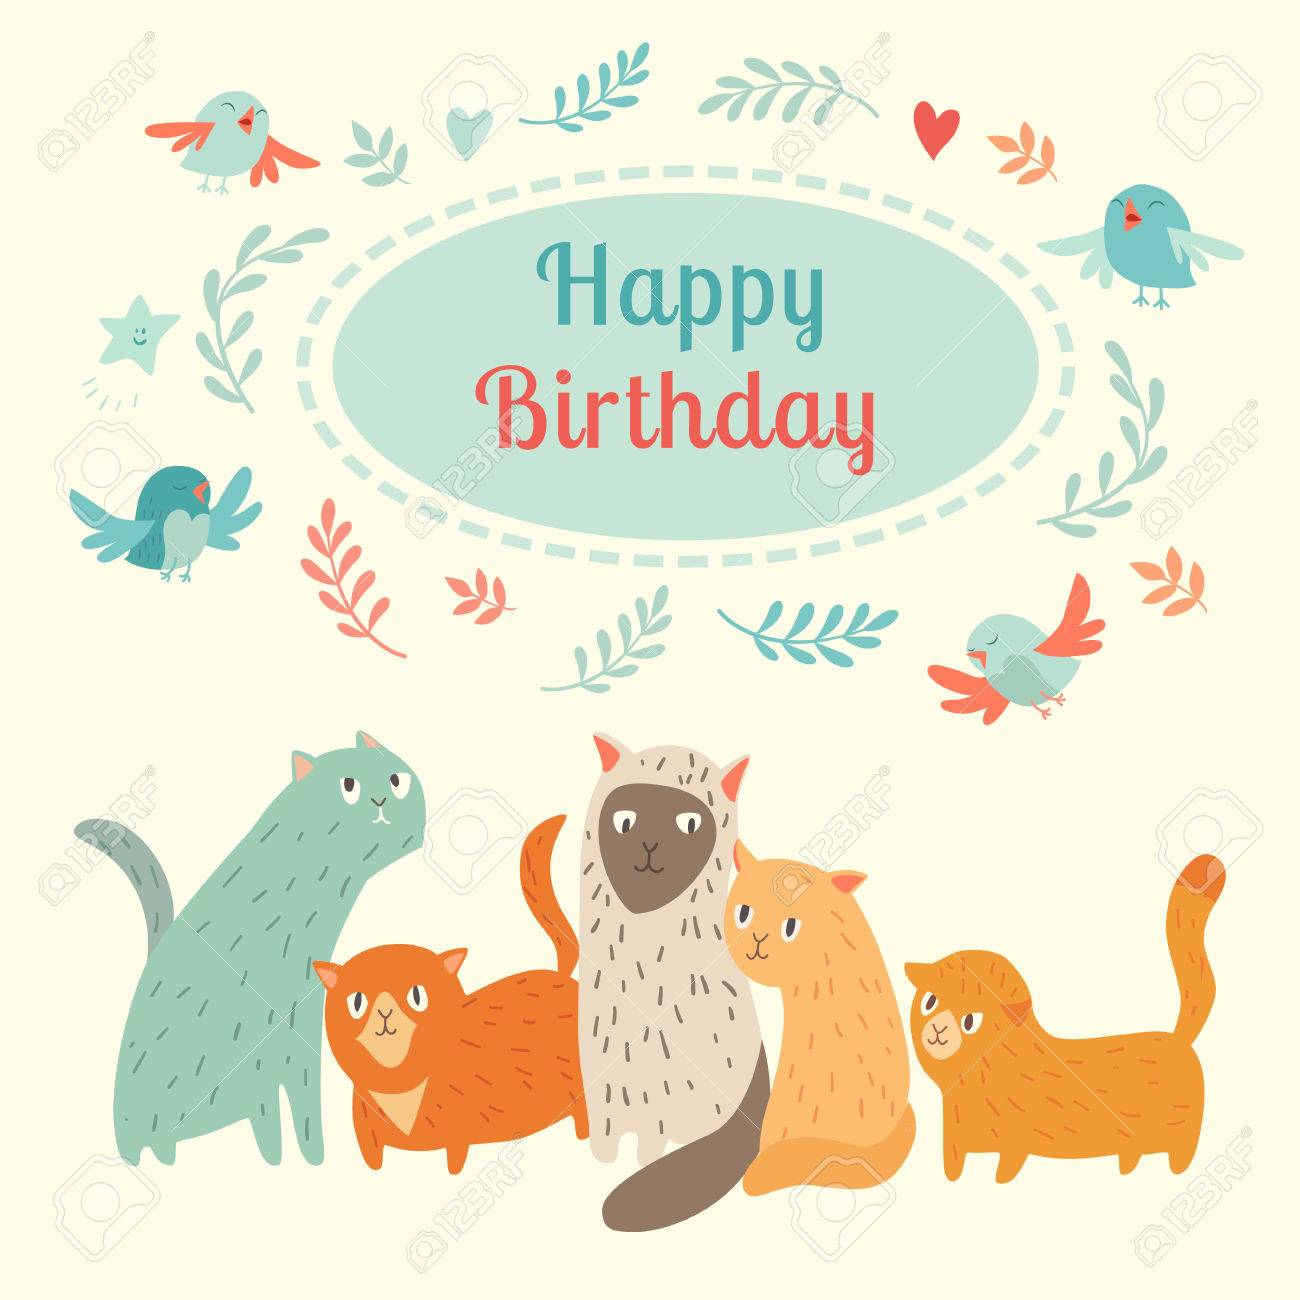 Happy Birthday Lovely Card With Cute Cats And Birds Vector